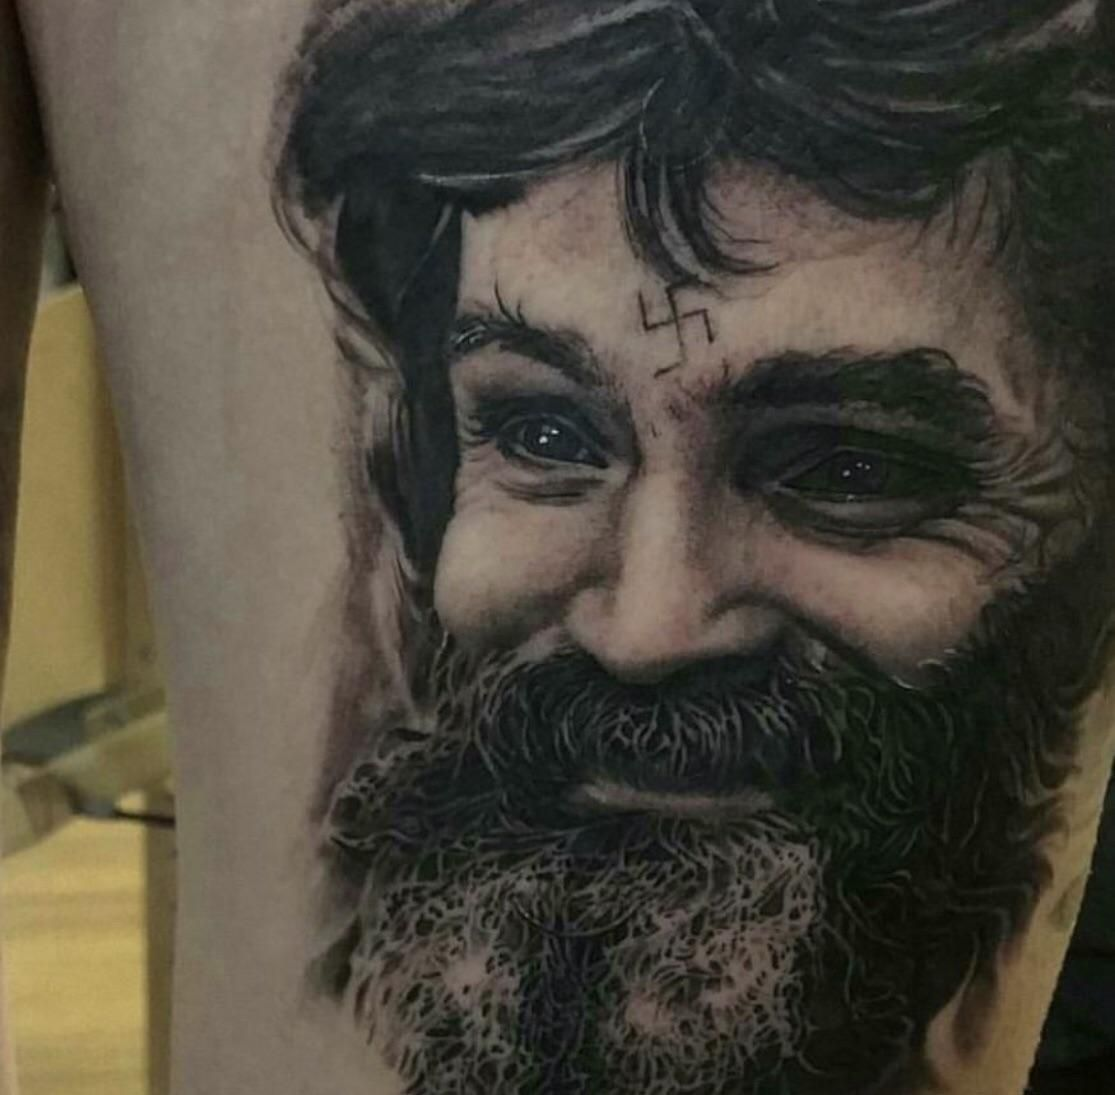 This Charles Manson tattoo that my artist did a couple years